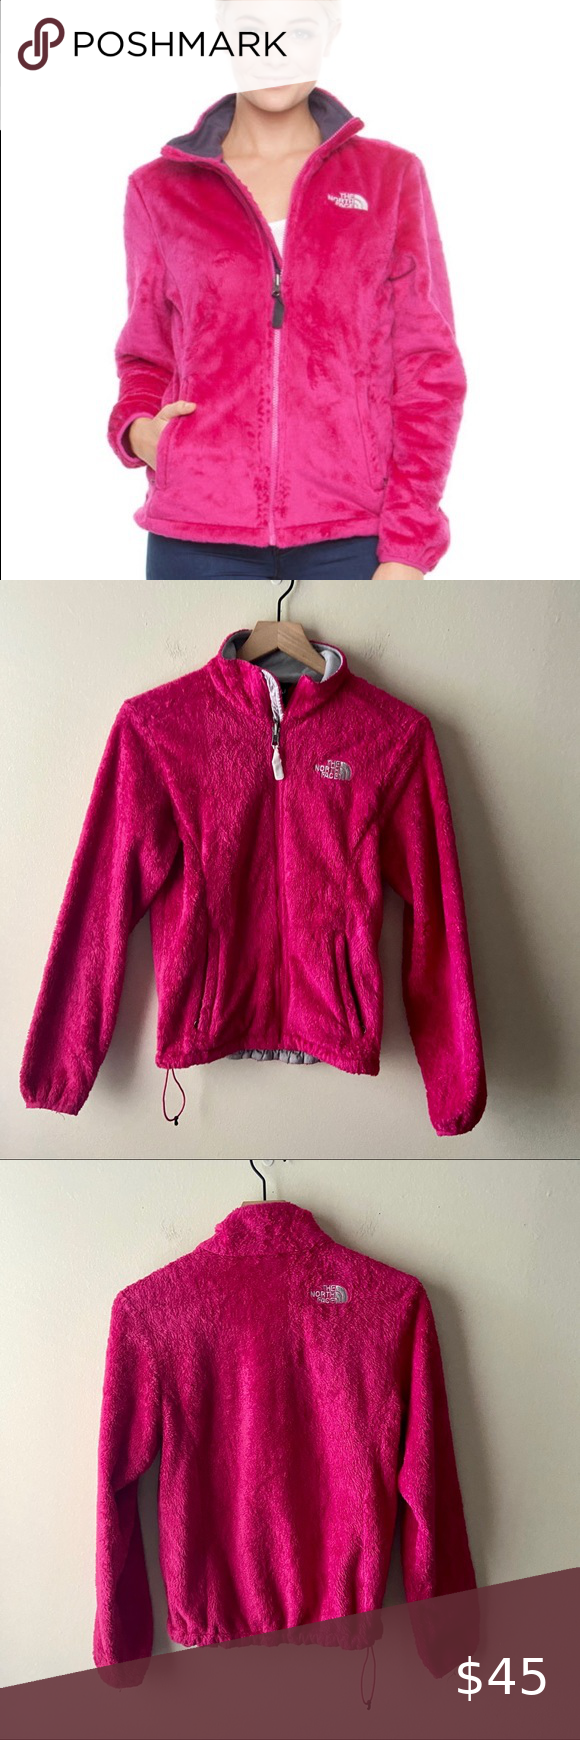 The North Face Hot Pink Fleece Jacket Brand The North Face Category Jackets Style Casual Outdoor Wear Activewear Co Fleece Jacket Jackets Jacket Brands [ 1740 x 580 Pixel ]